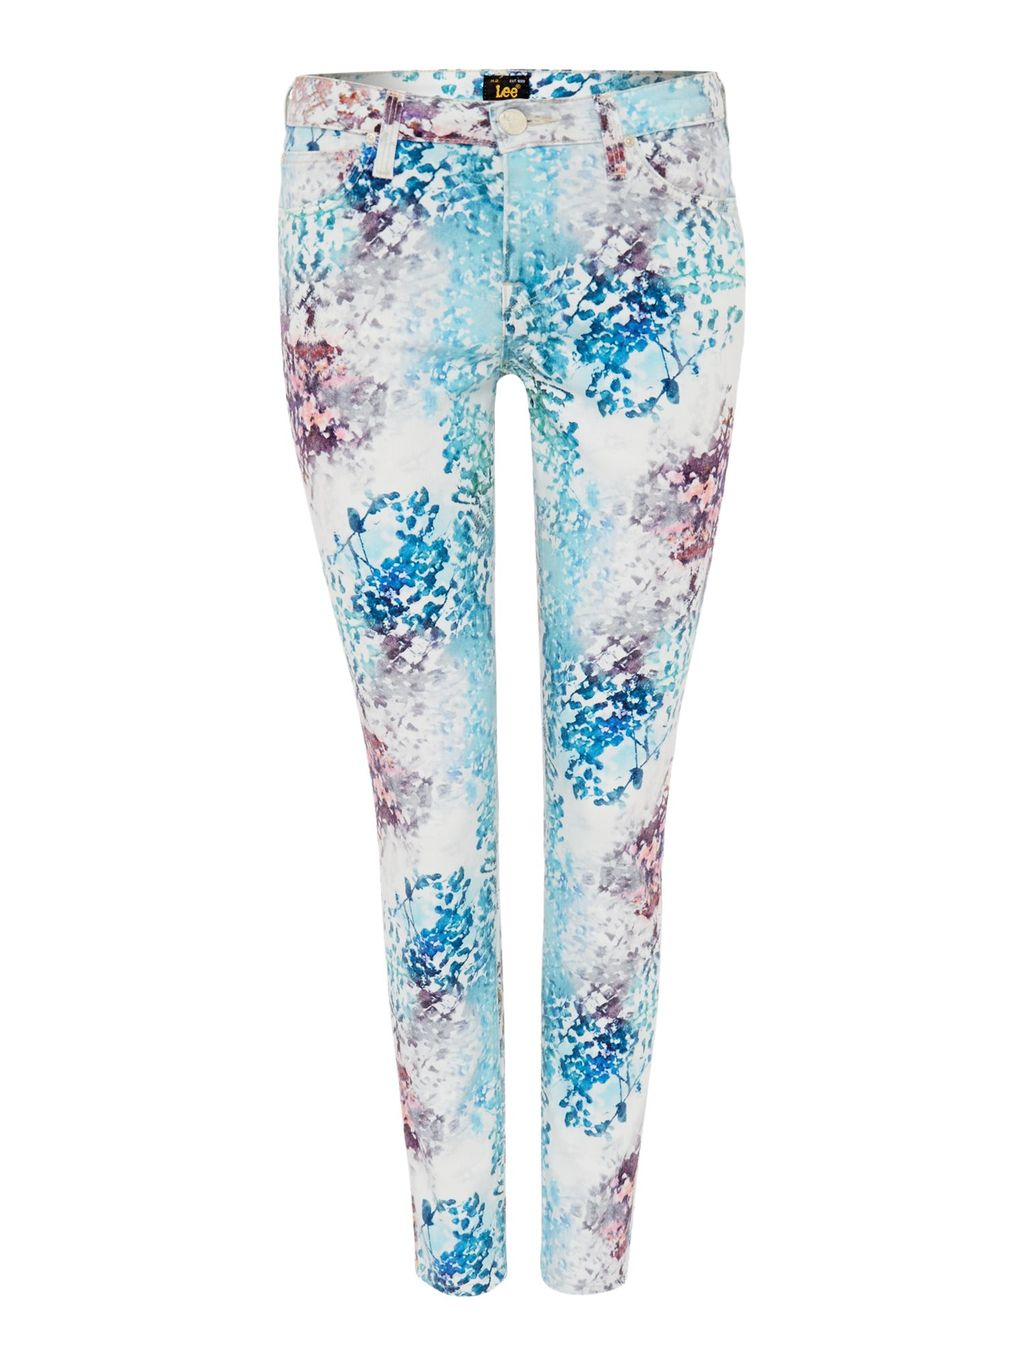 Scarlett Skinny Fit Jean In Spring All Over, Multi Coloured - style: skinny leg; length: standard; pocket detail: traditional 5 pocket; waist: mid/regular rise; predominant colour: ivory/cream; secondary colour: diva blue; occasions: casual, creative work; fibres: cotton - stretch; texture group: denim; pattern type: fabric; pattern: florals; season: s/s 2015; pattern size: standard (bottom); multicoloured: multicoloured; wardrobe: highlight